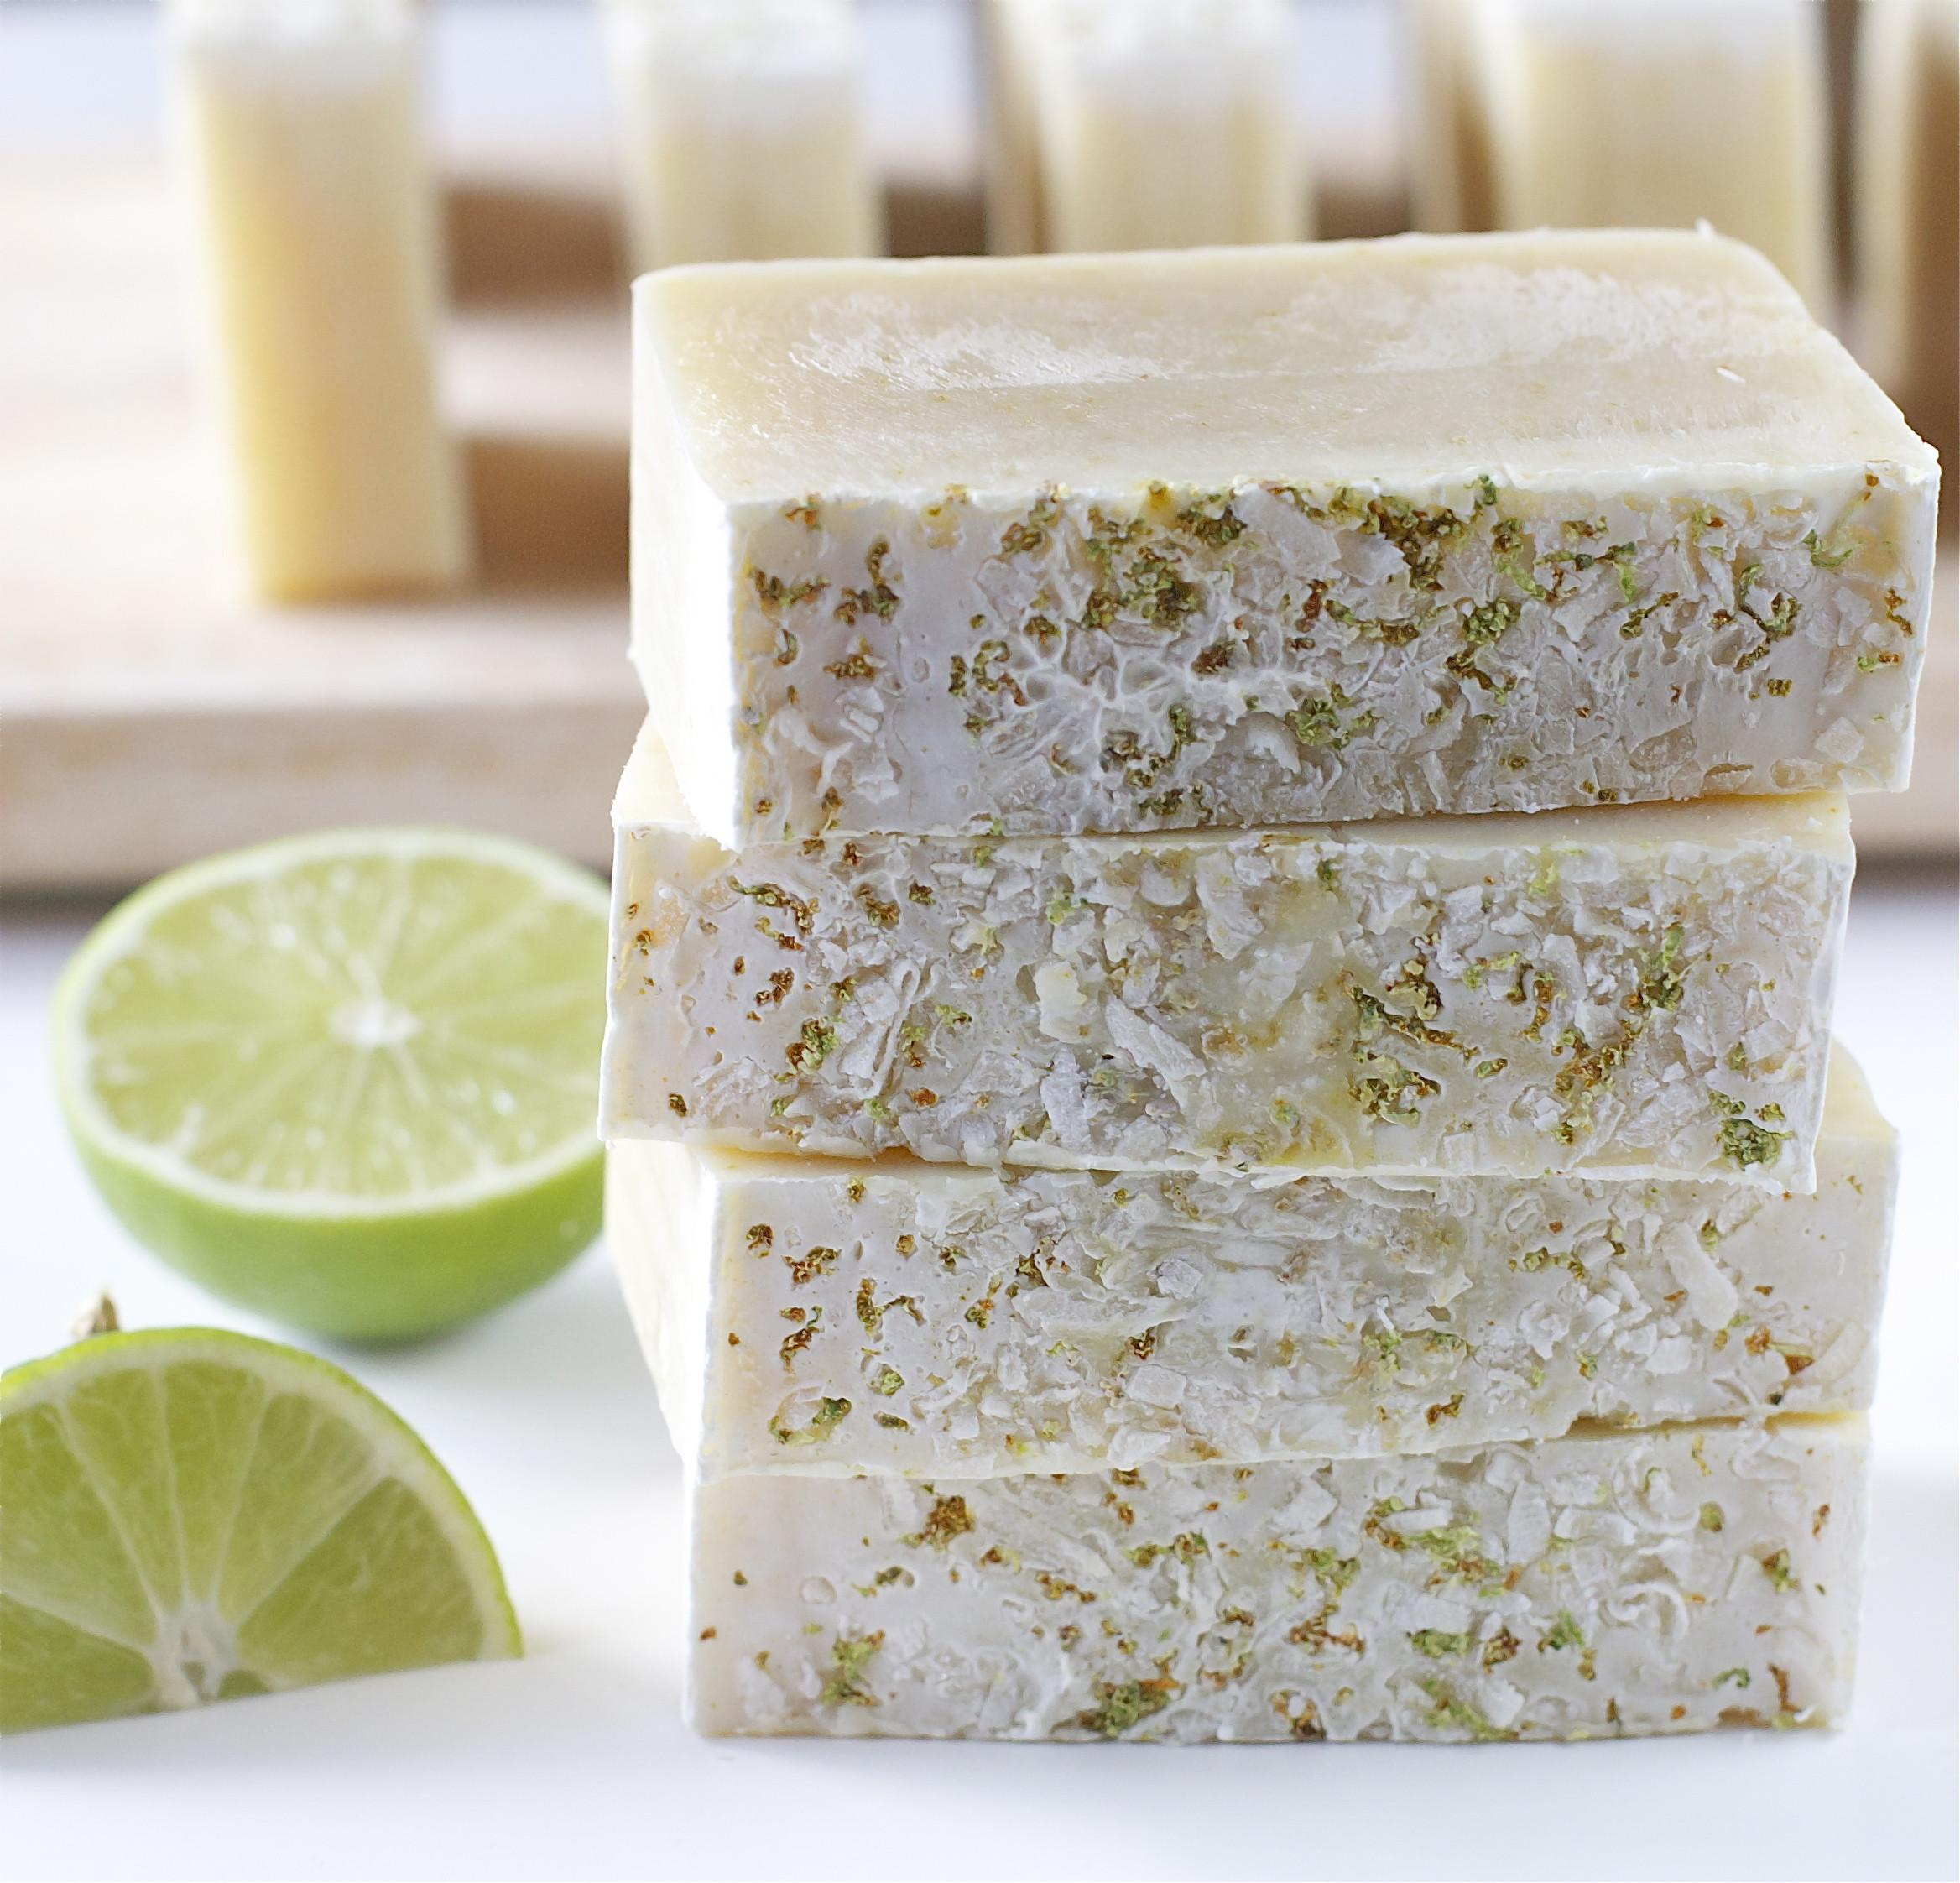 Coconut Lime Soap Offbeat Inspired